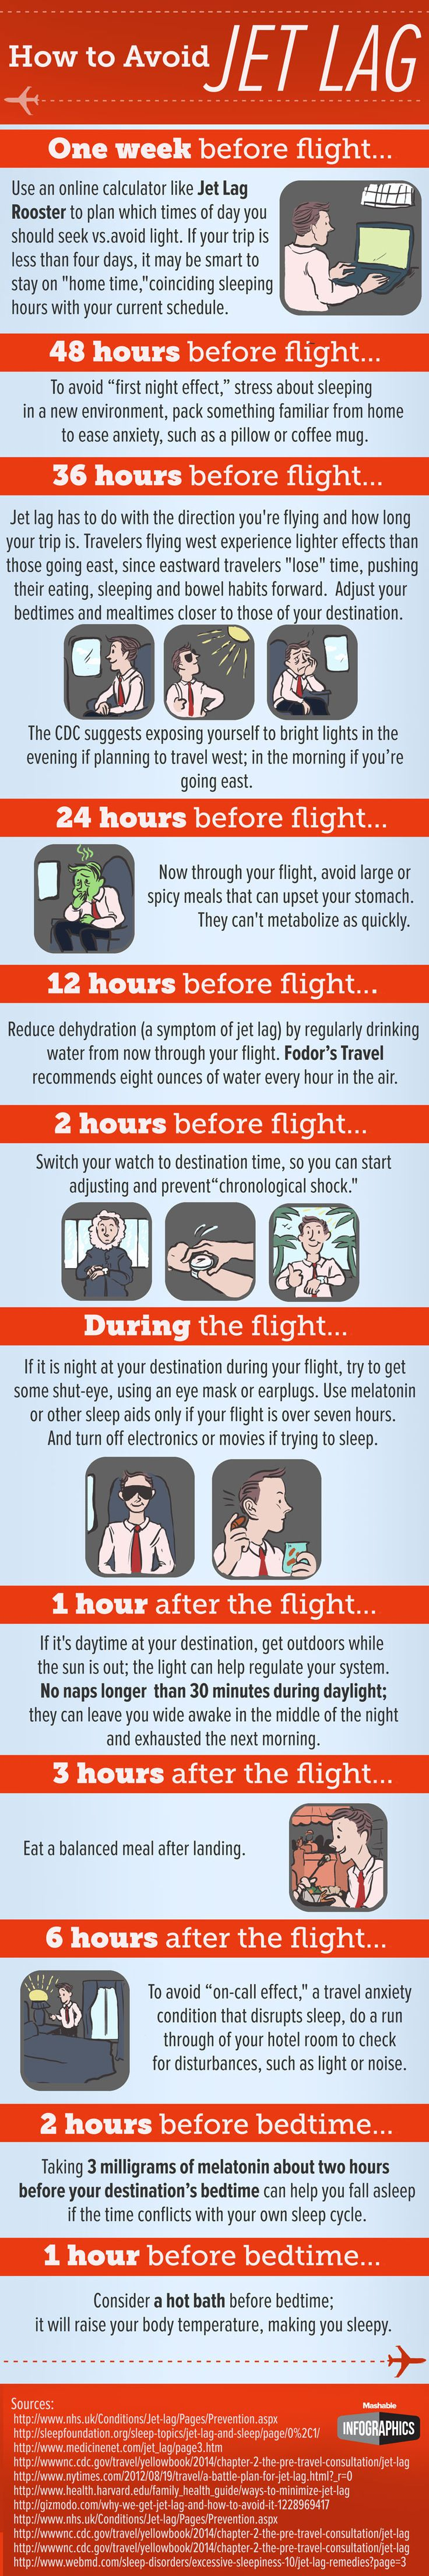 How To Avoid Jet lag via Mashable